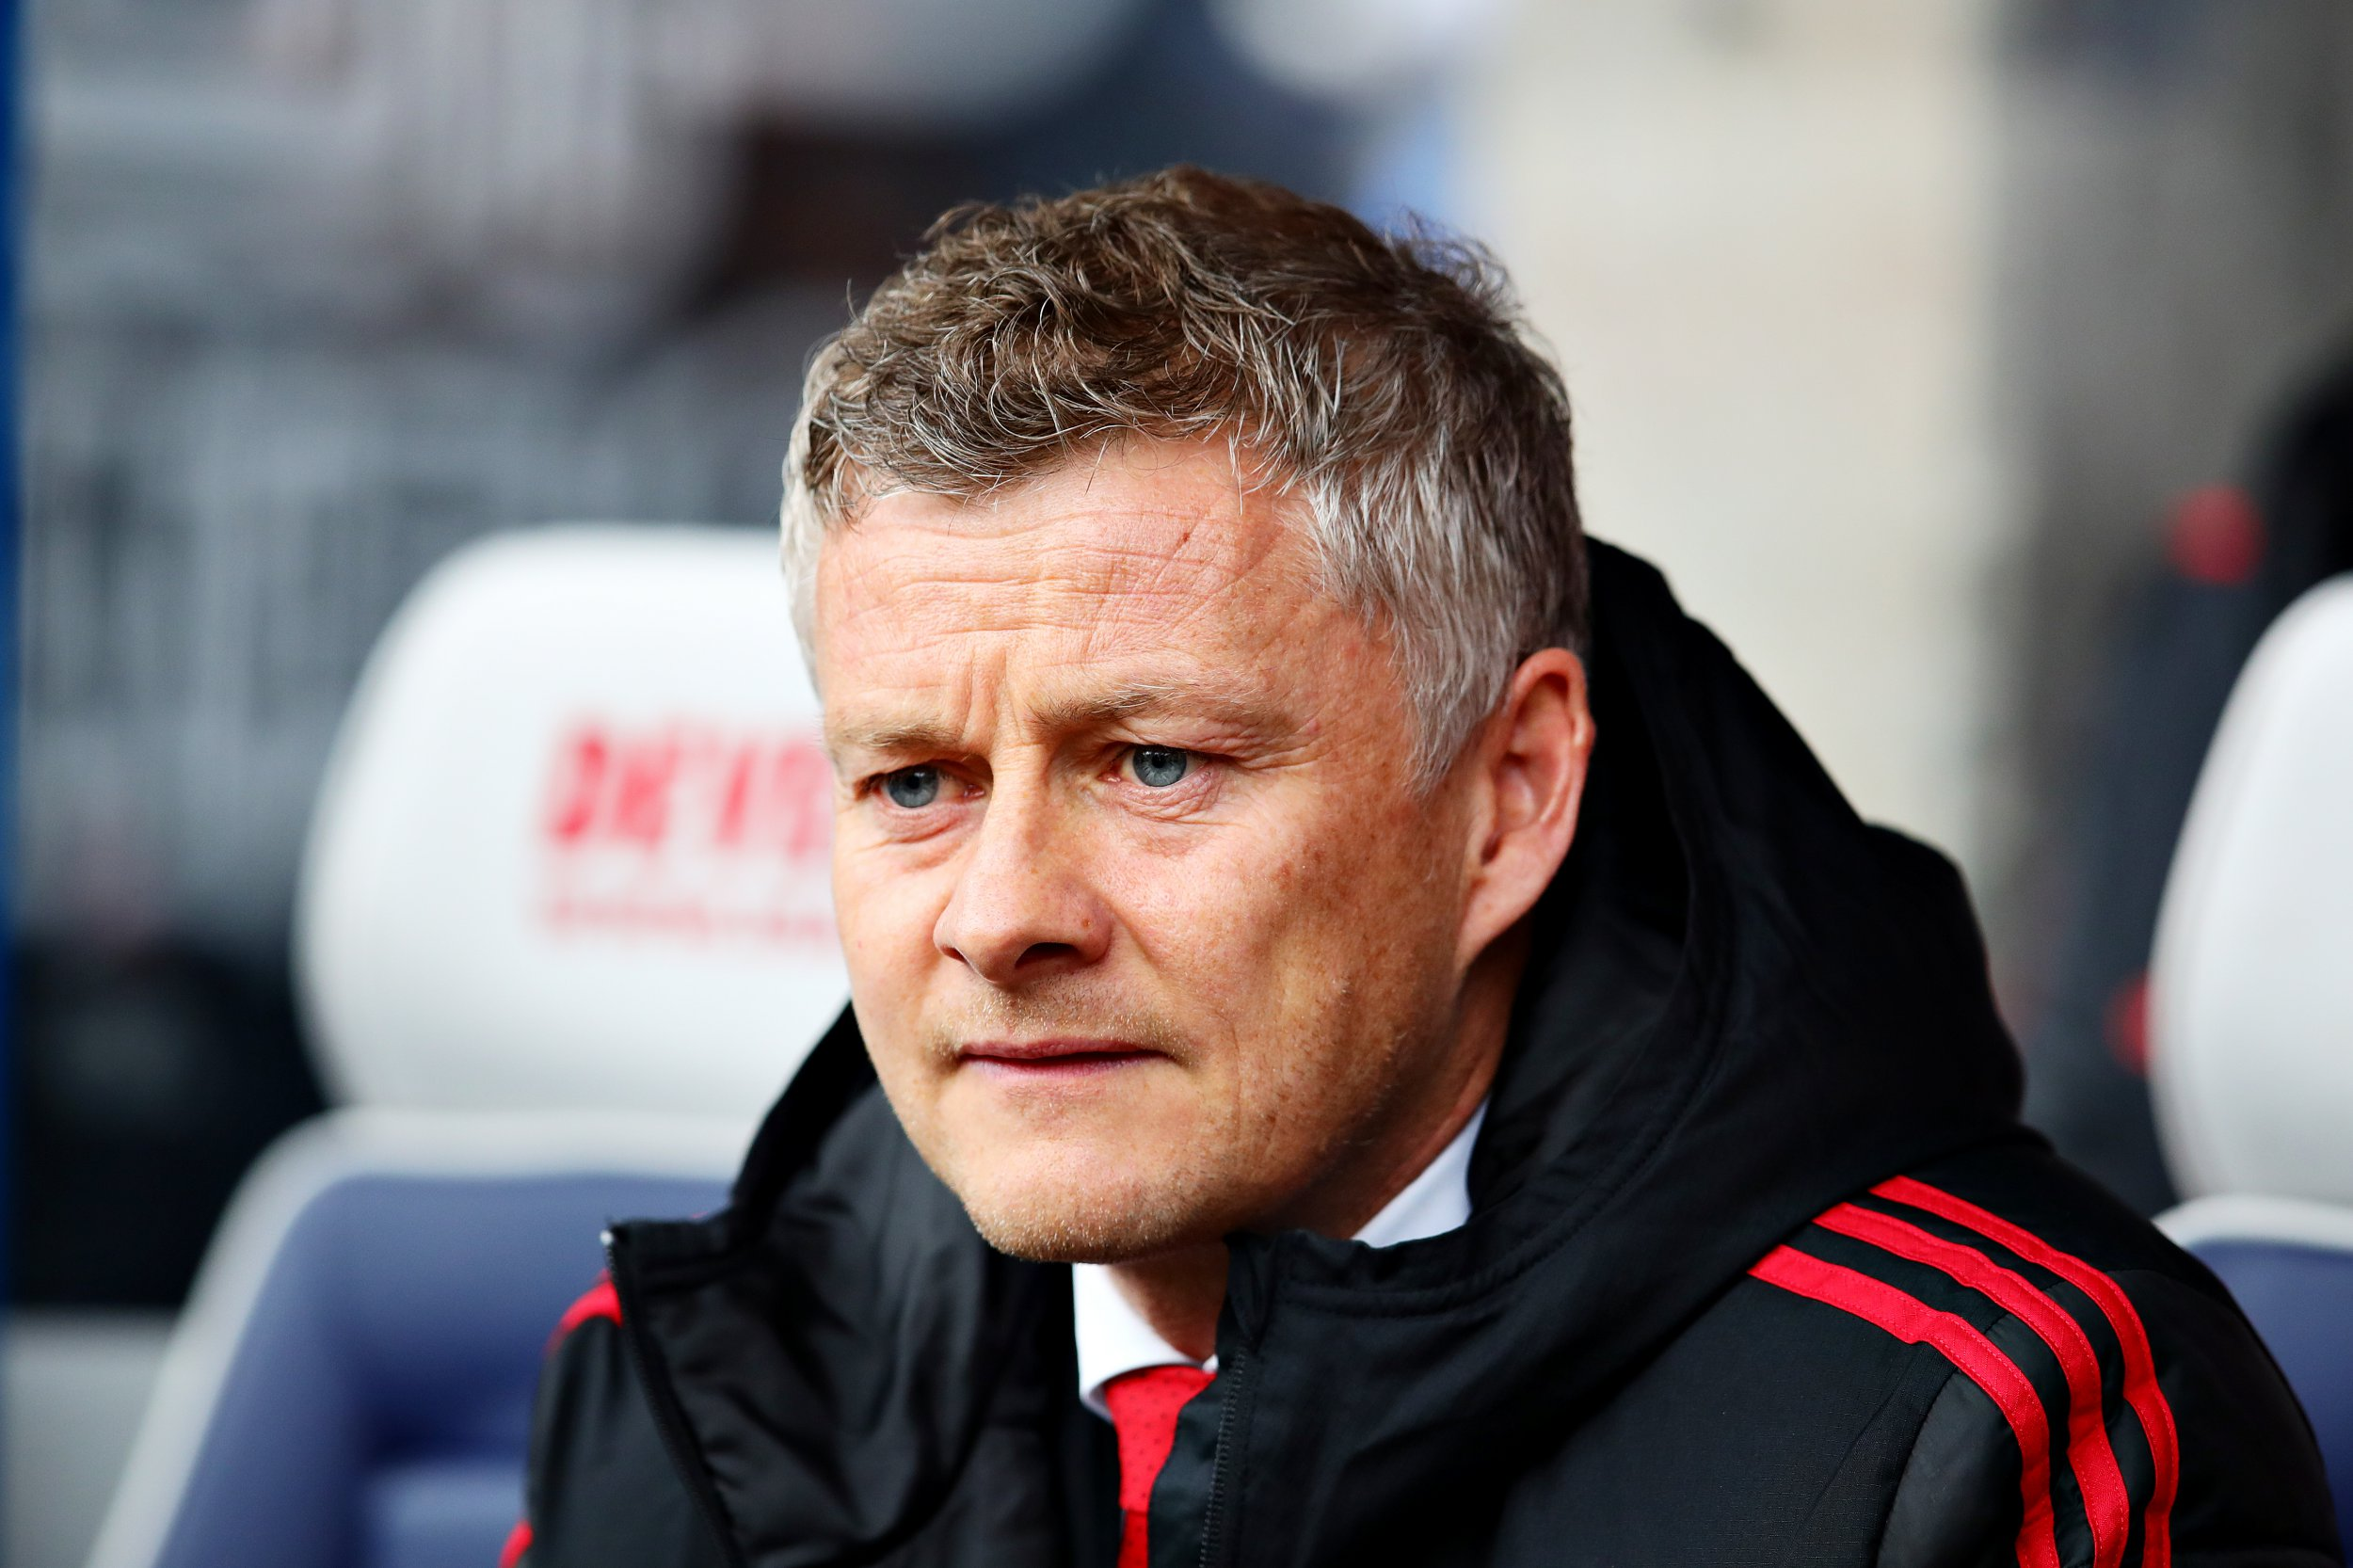 HUDDERSFIELD, ENGLAND - MAY 05: Manager of Manchester United Ole Gunnar Solskjaer looks on from the dugout during the Premier League match between Huddersfield Town and Manchester United at John Smith's Stadium on May 05, 2019 in Huddersfield, United Kingdom. (Photo by Chris Brunskill/Fantasista/Getty Images)